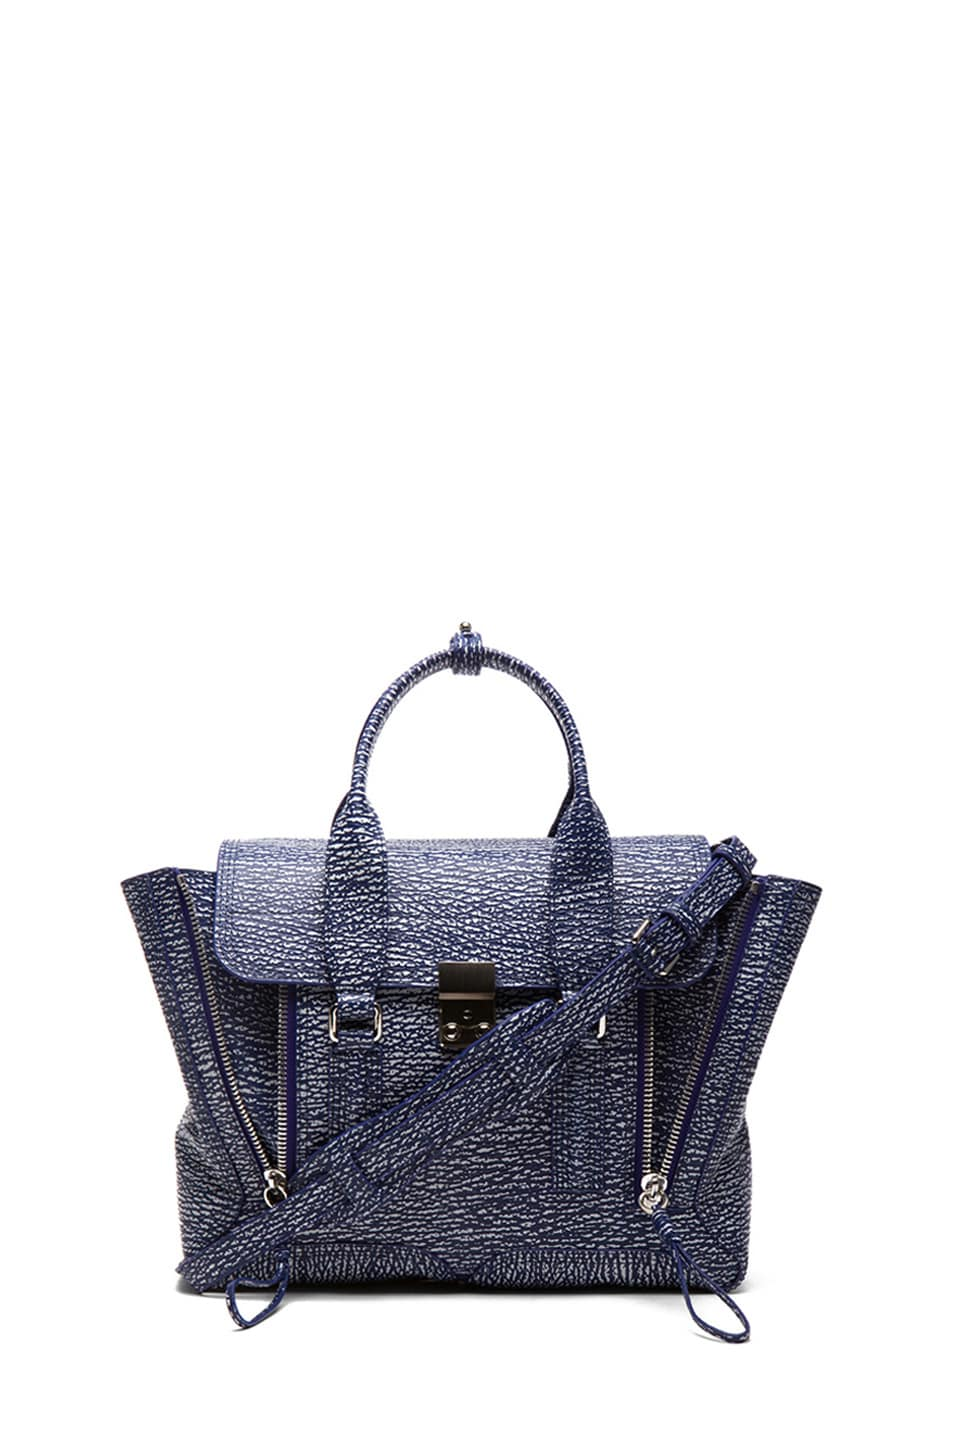 Image 1 of 3.1 phillip lim Medium Pashli Trapeze in Cobalt & Antique White